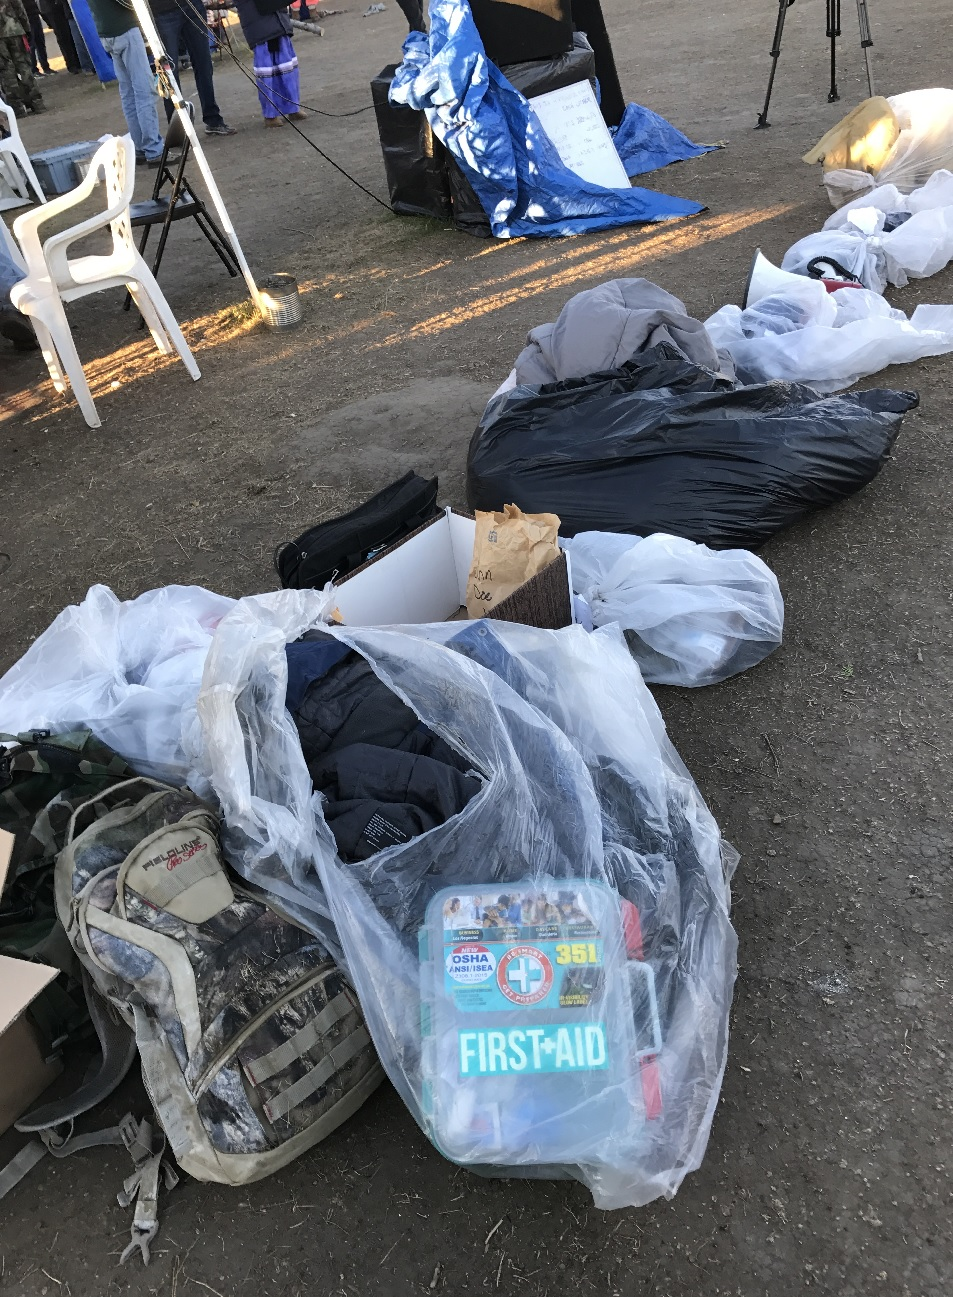 Confiscated possessions were just dumped out of a truck